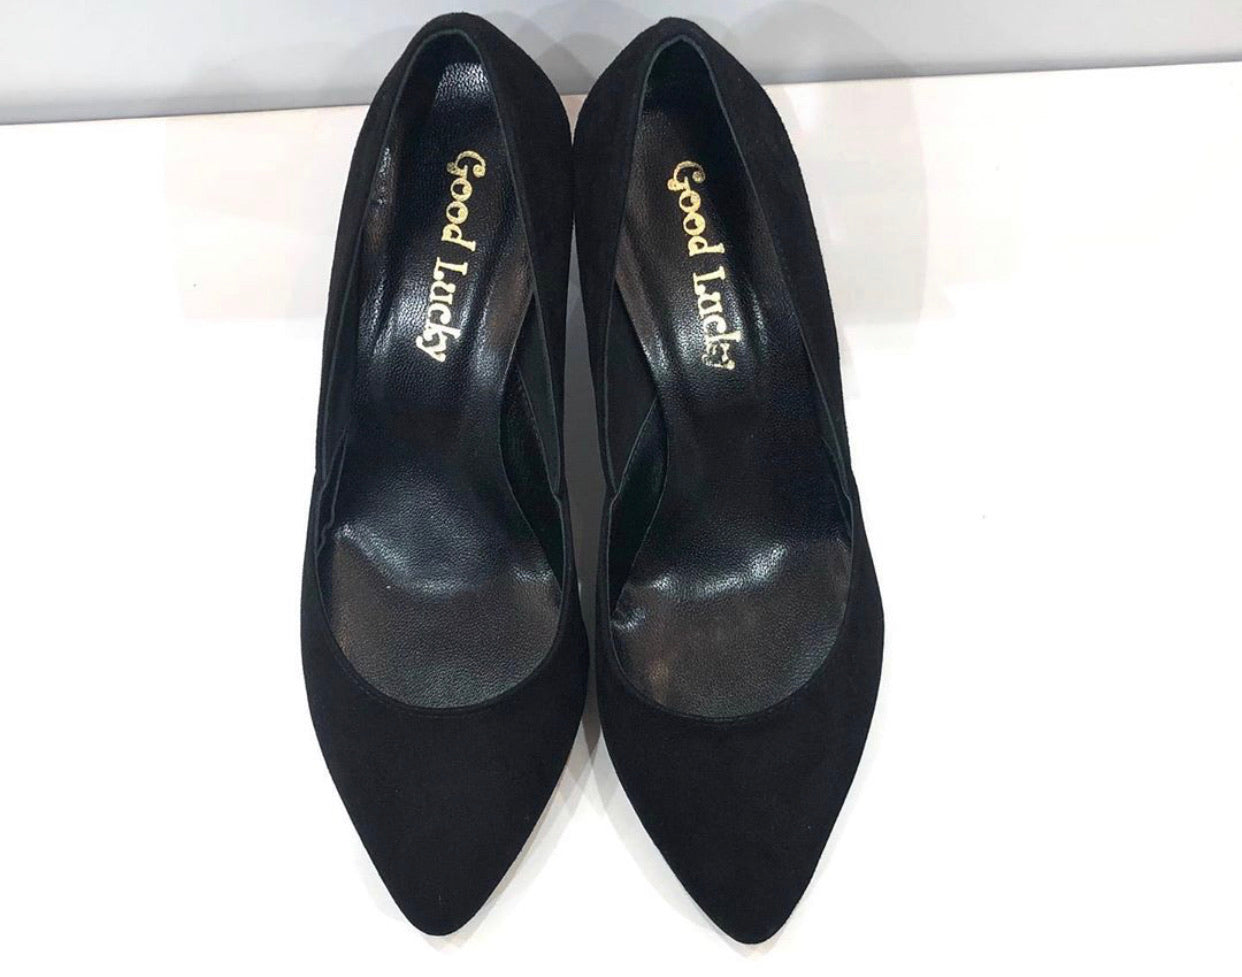 Shoes black velvet good lucky